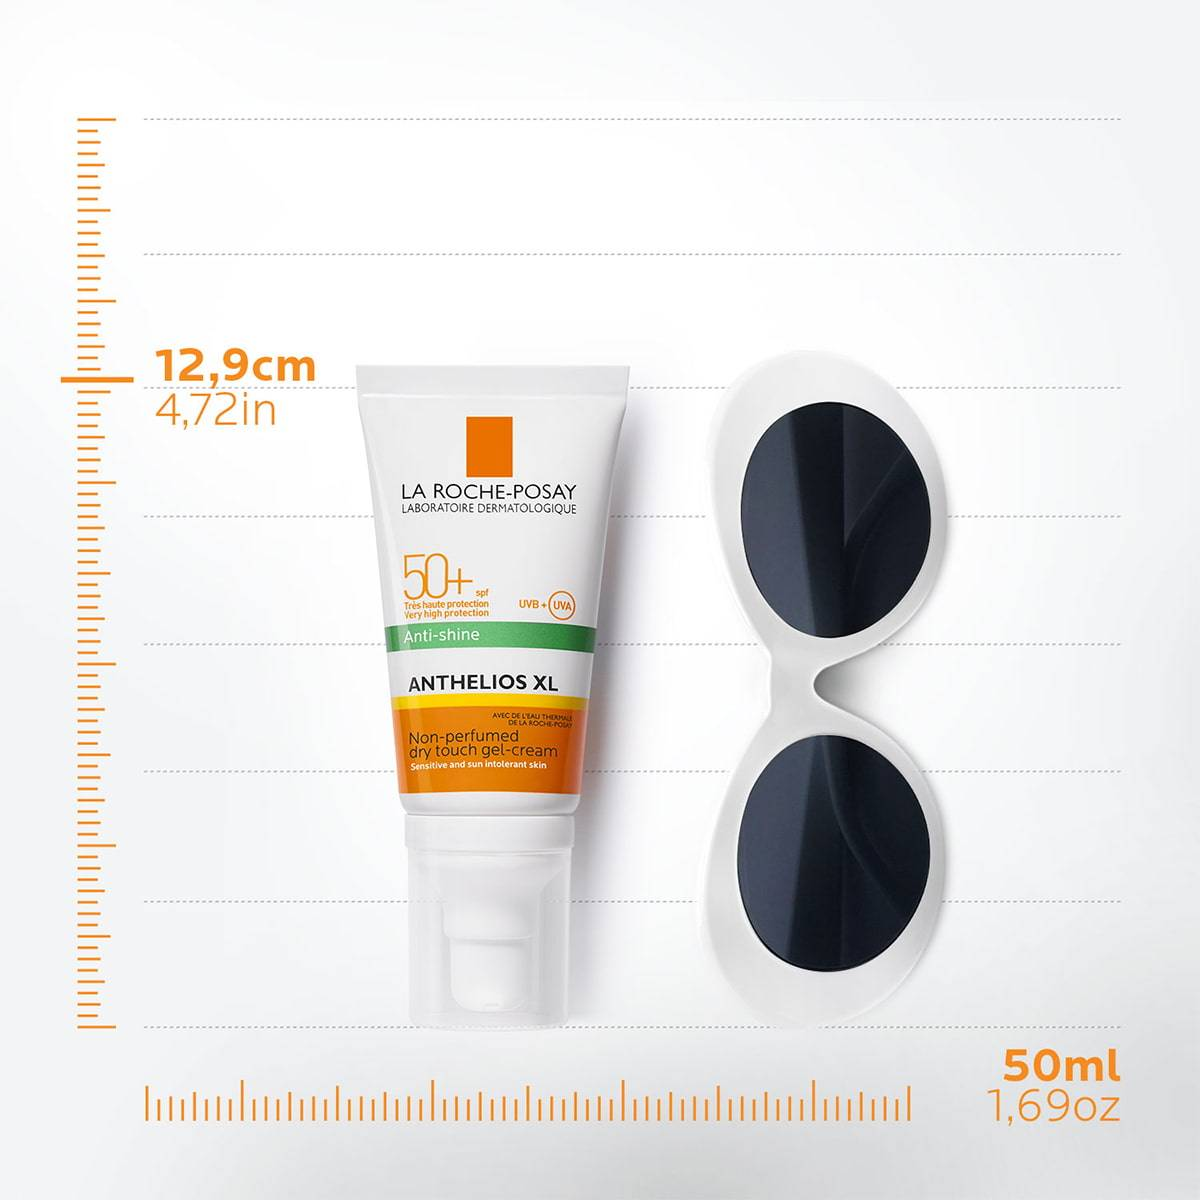 La Roche Posay ProductPage Sun Anthelios XL Dry Touch Gel Cream Spf50